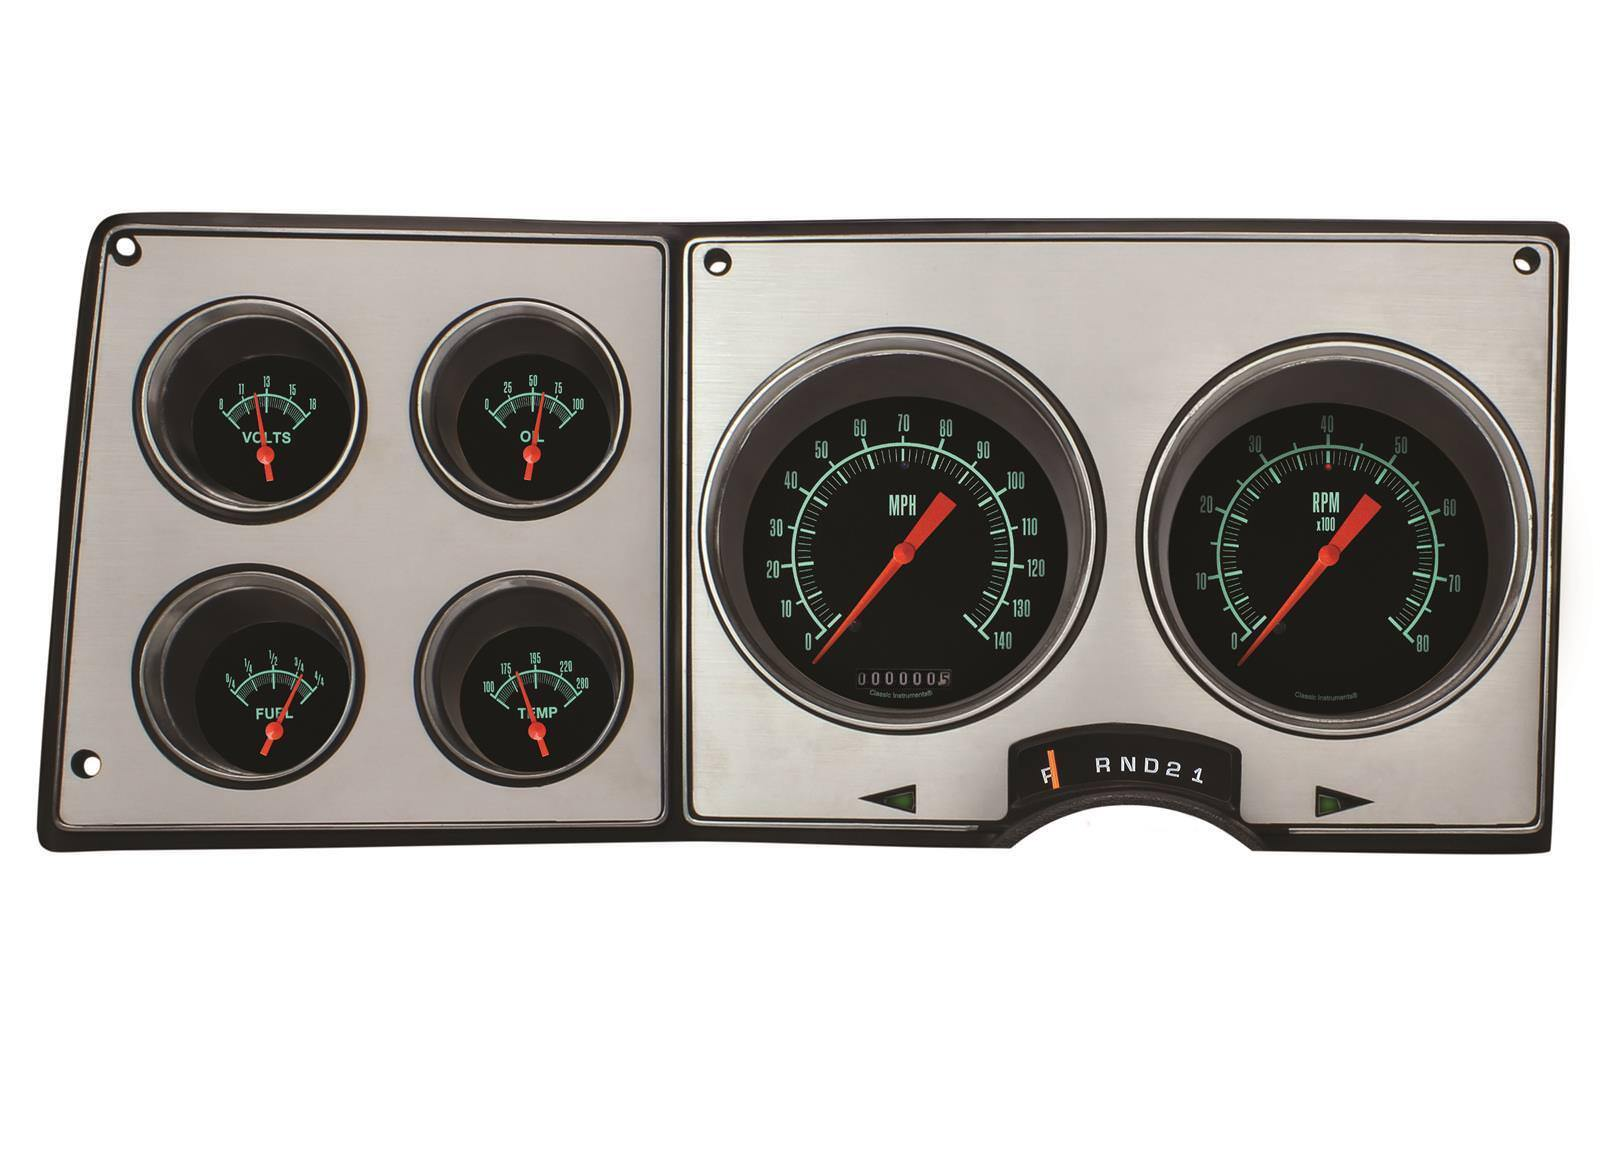 1981 1982 Direct Fit GAUGE CLUSTER Chevy / GMC PICK-UP TRUCK Blazer CT73GS